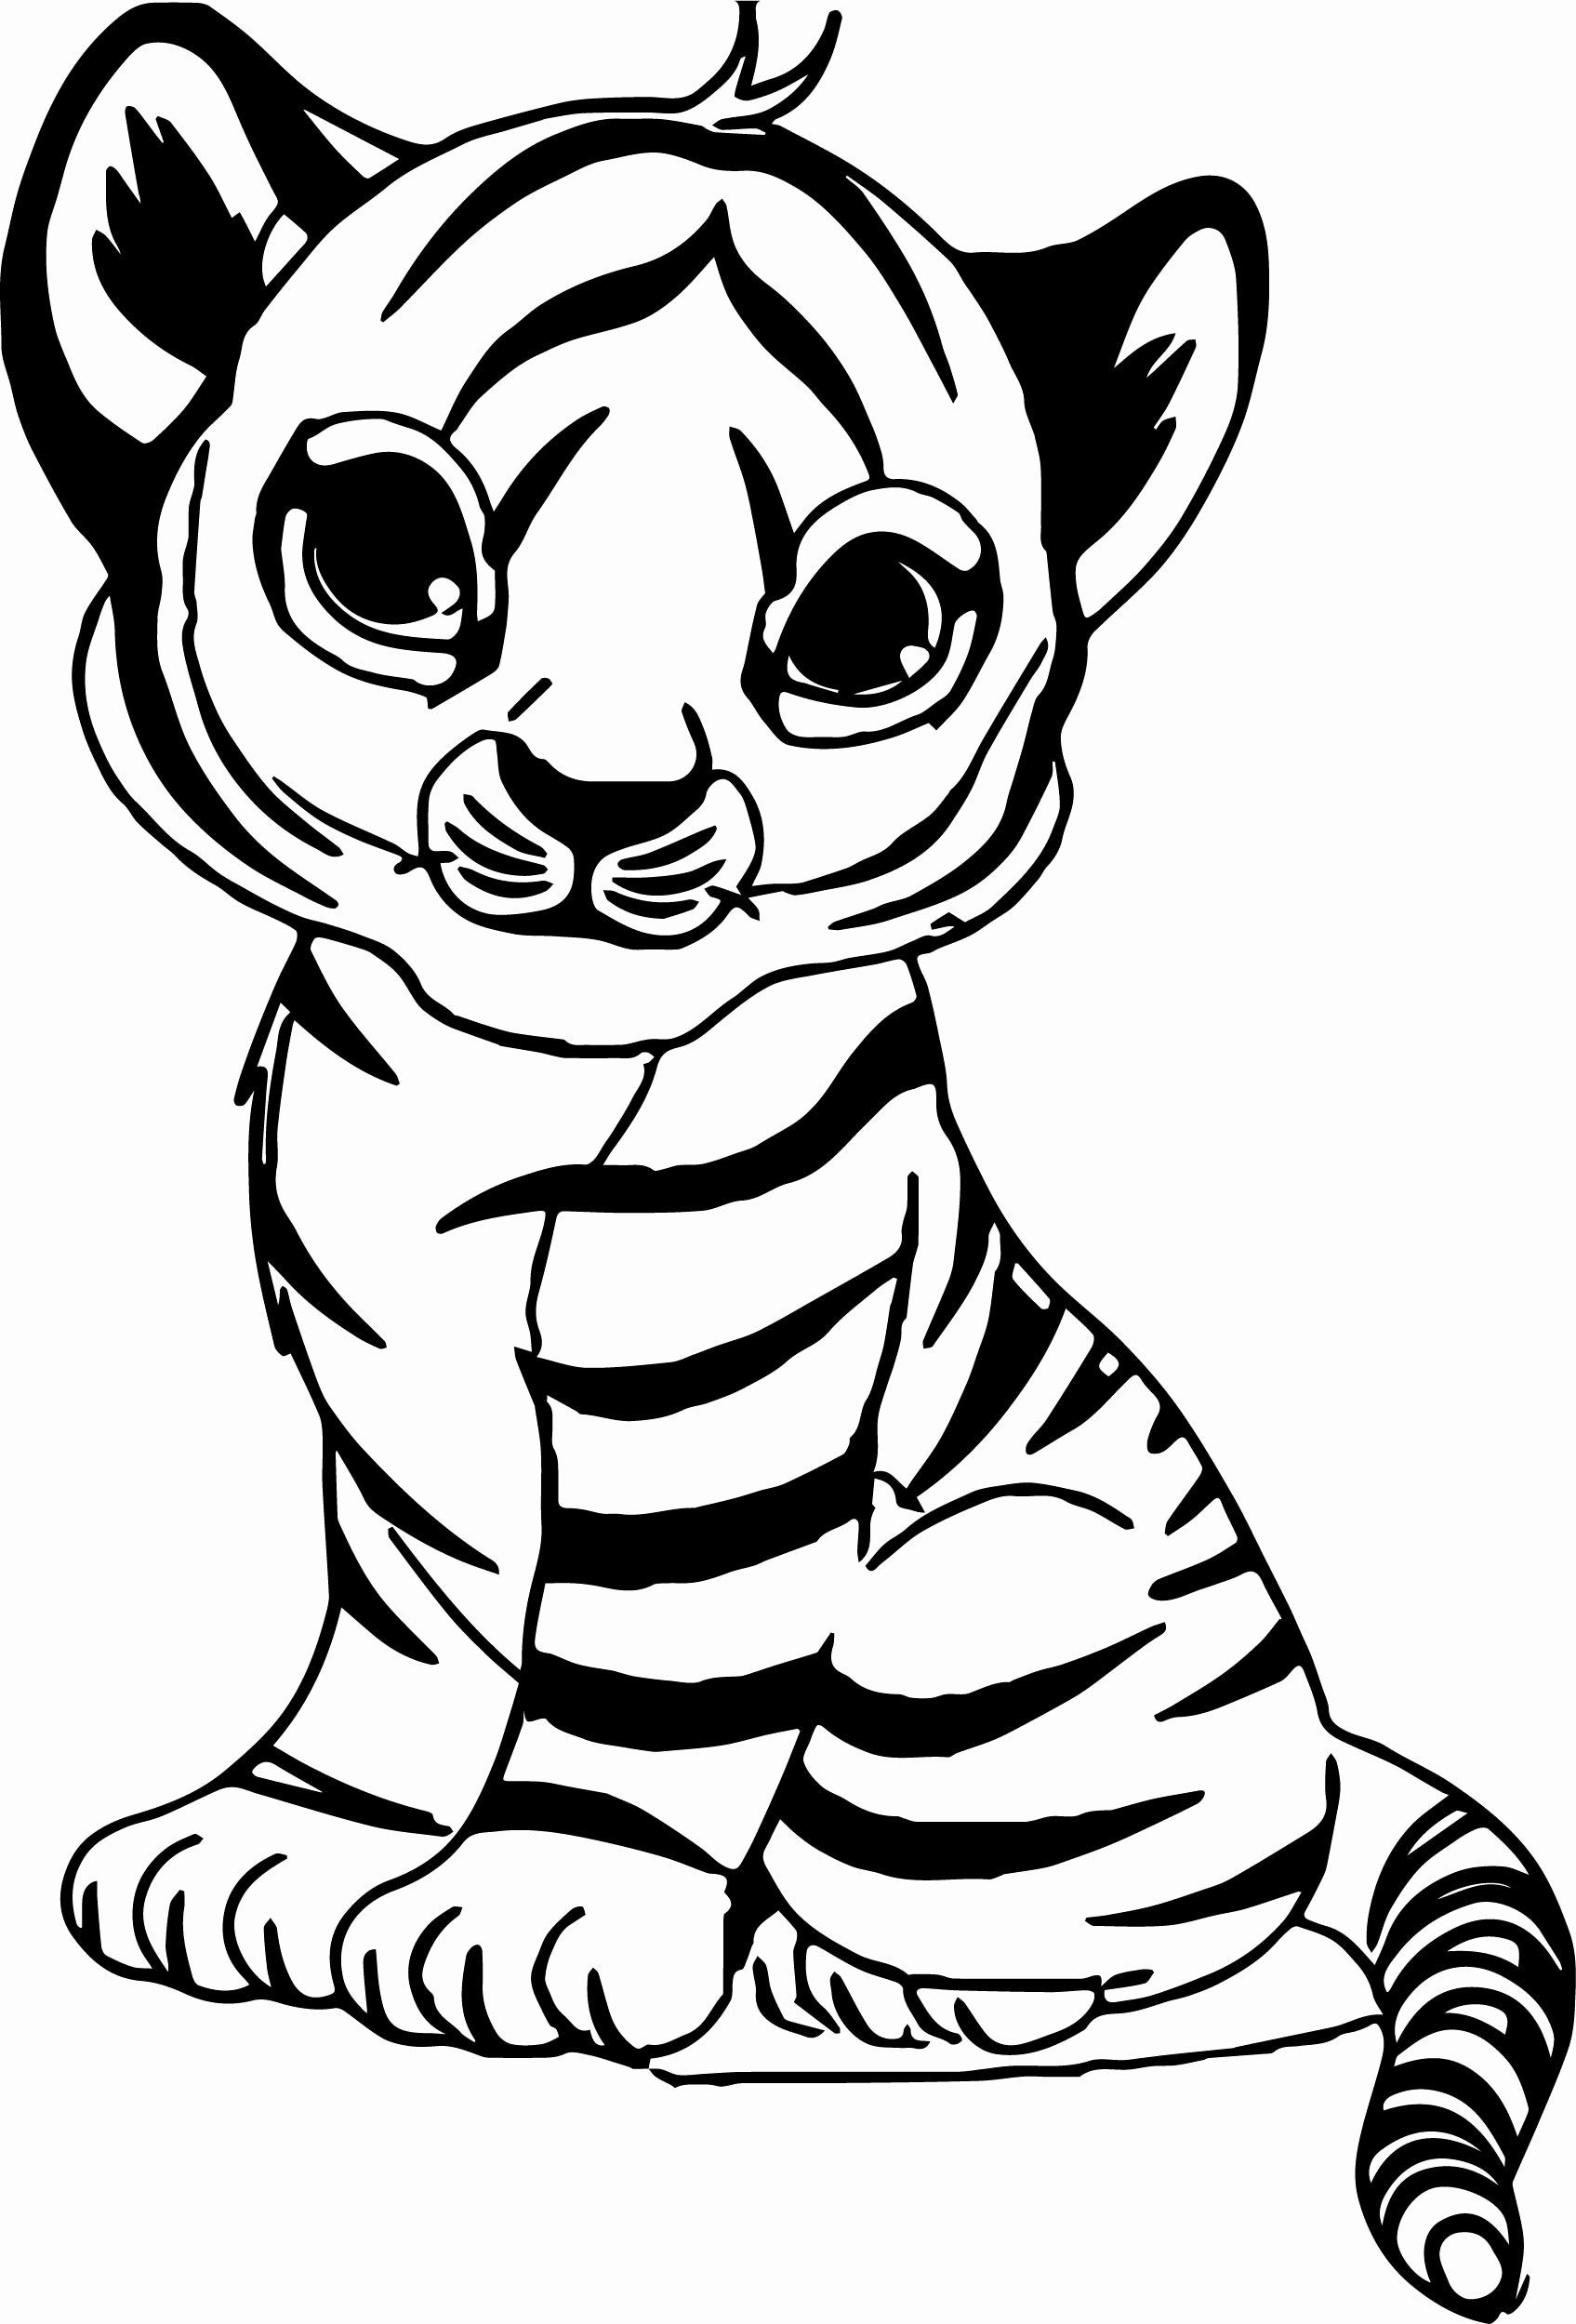 zoo animals coloring pictures zebra coloring pages free printable kids coloring pages animals pictures zoo coloring